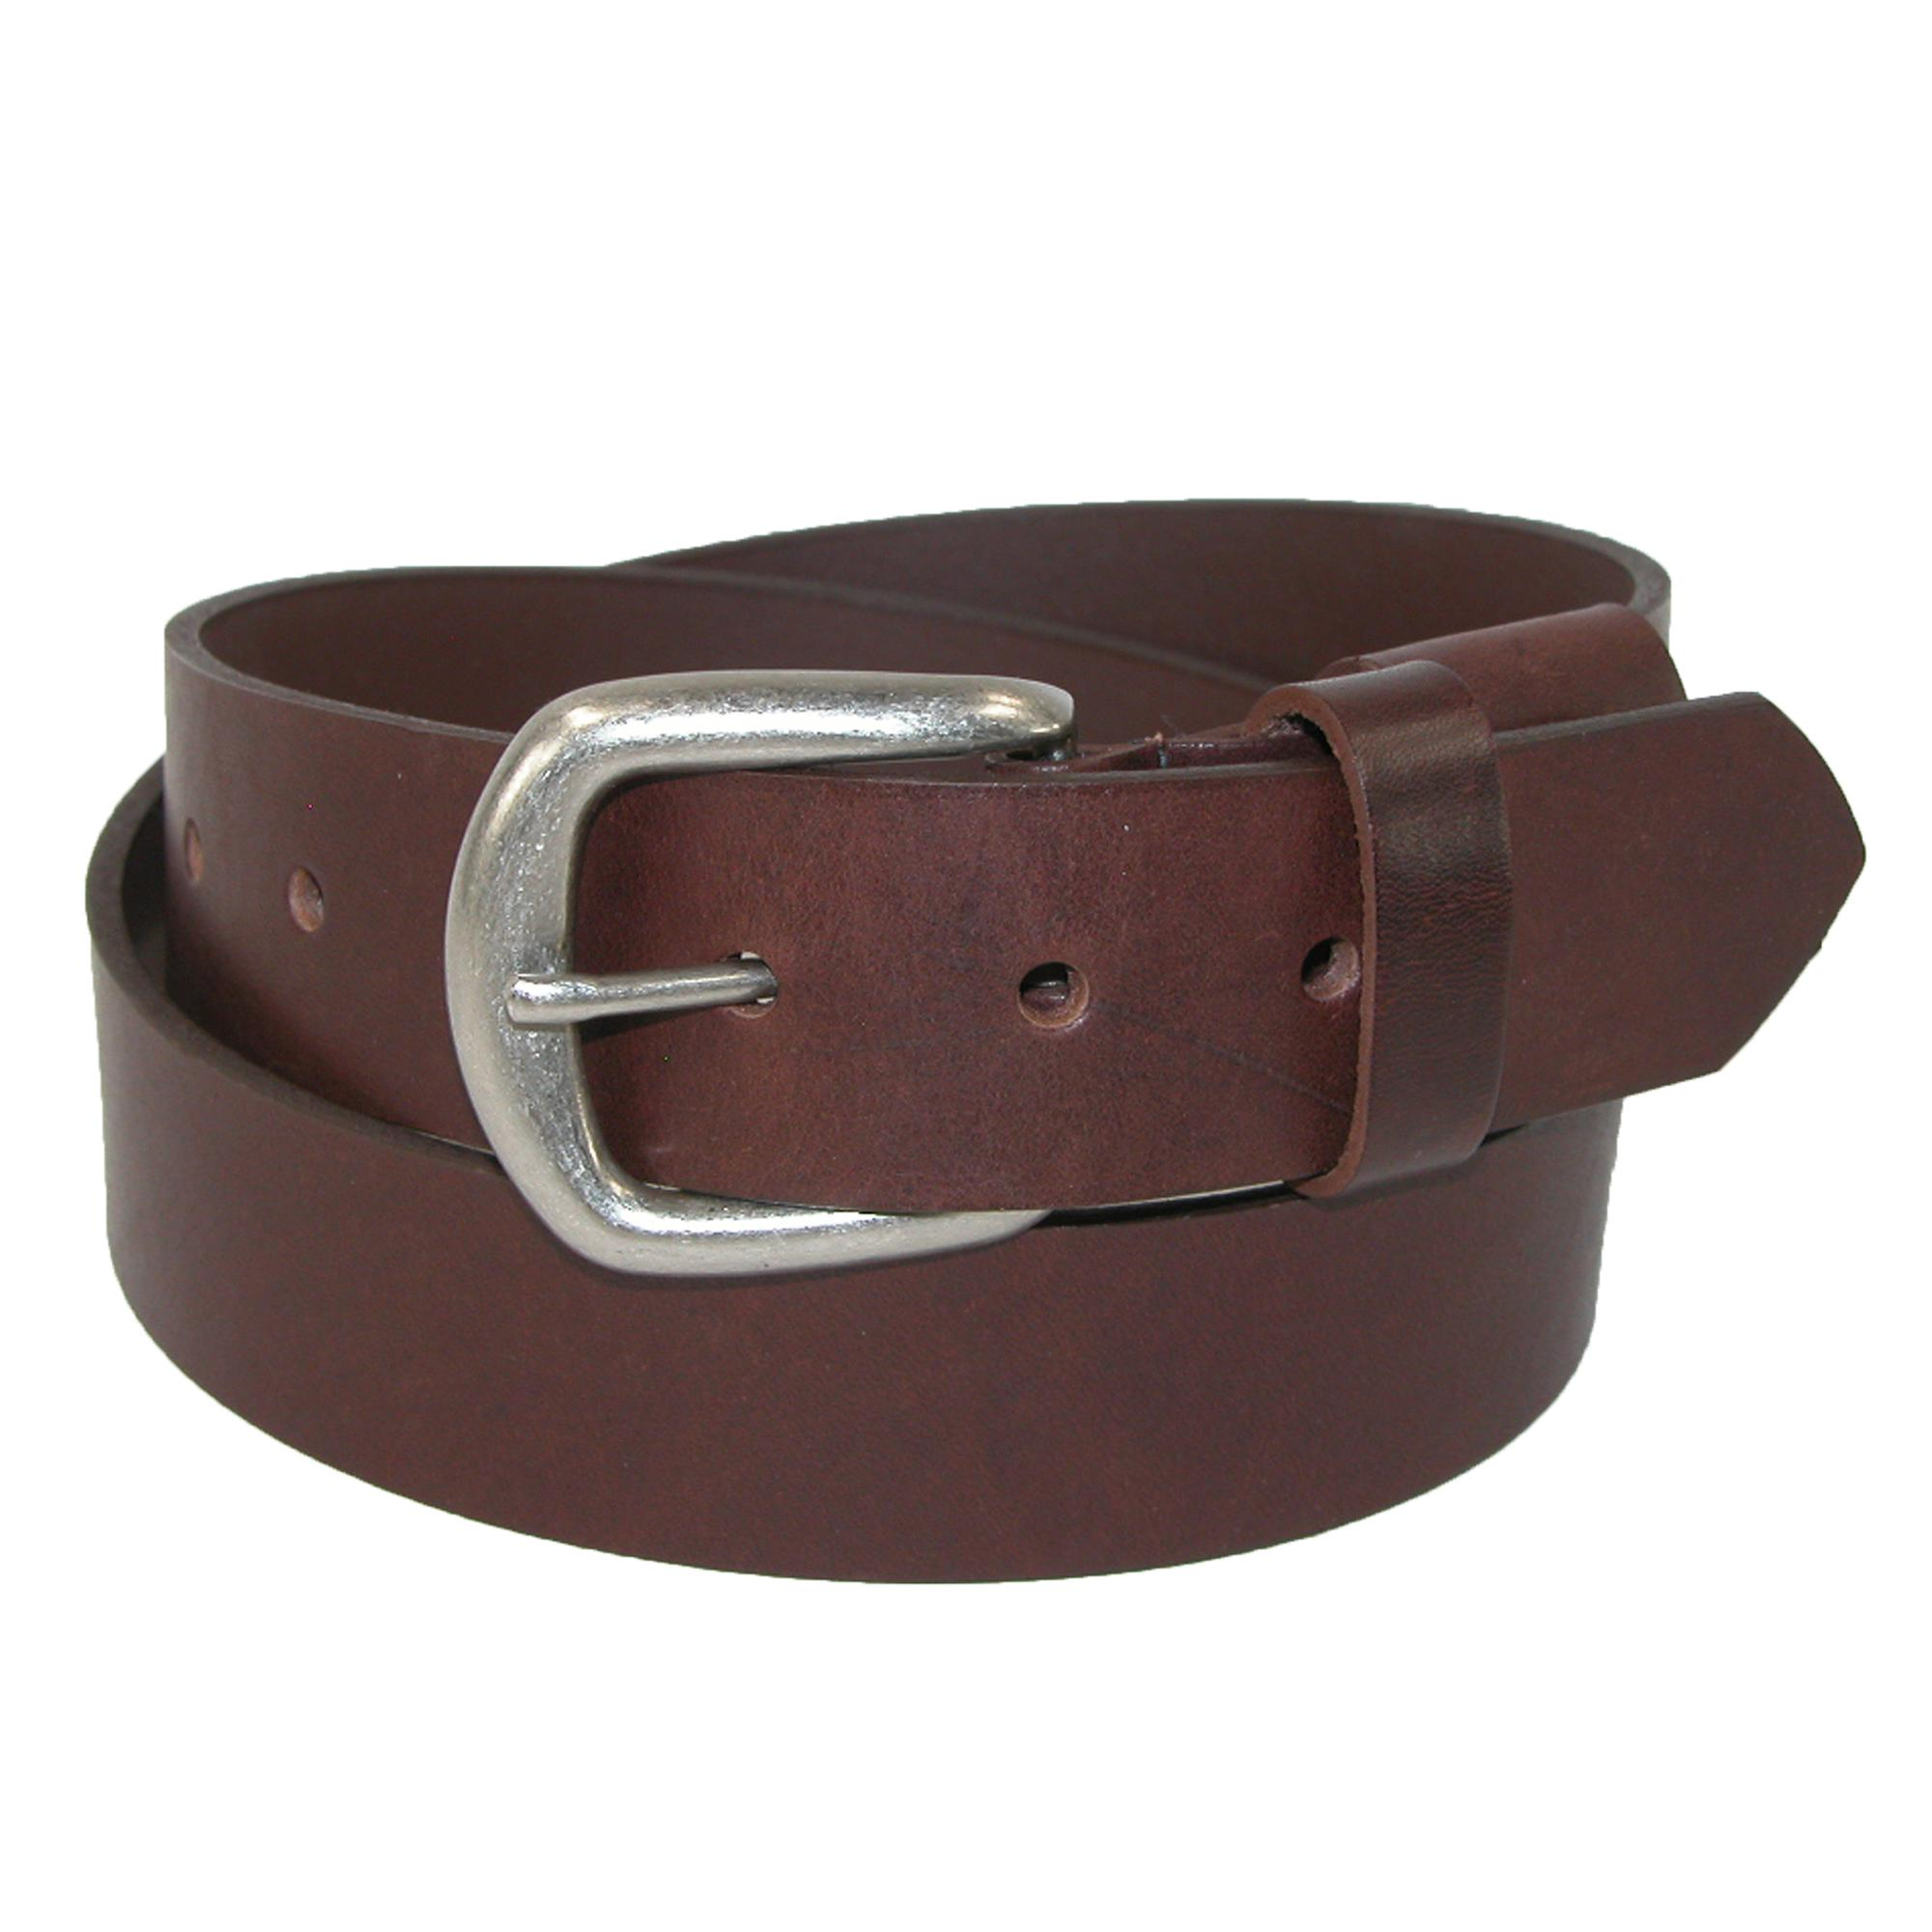 Boston Leather Men's Big & Tall Leather Bridle Belt With Hidden Elastic